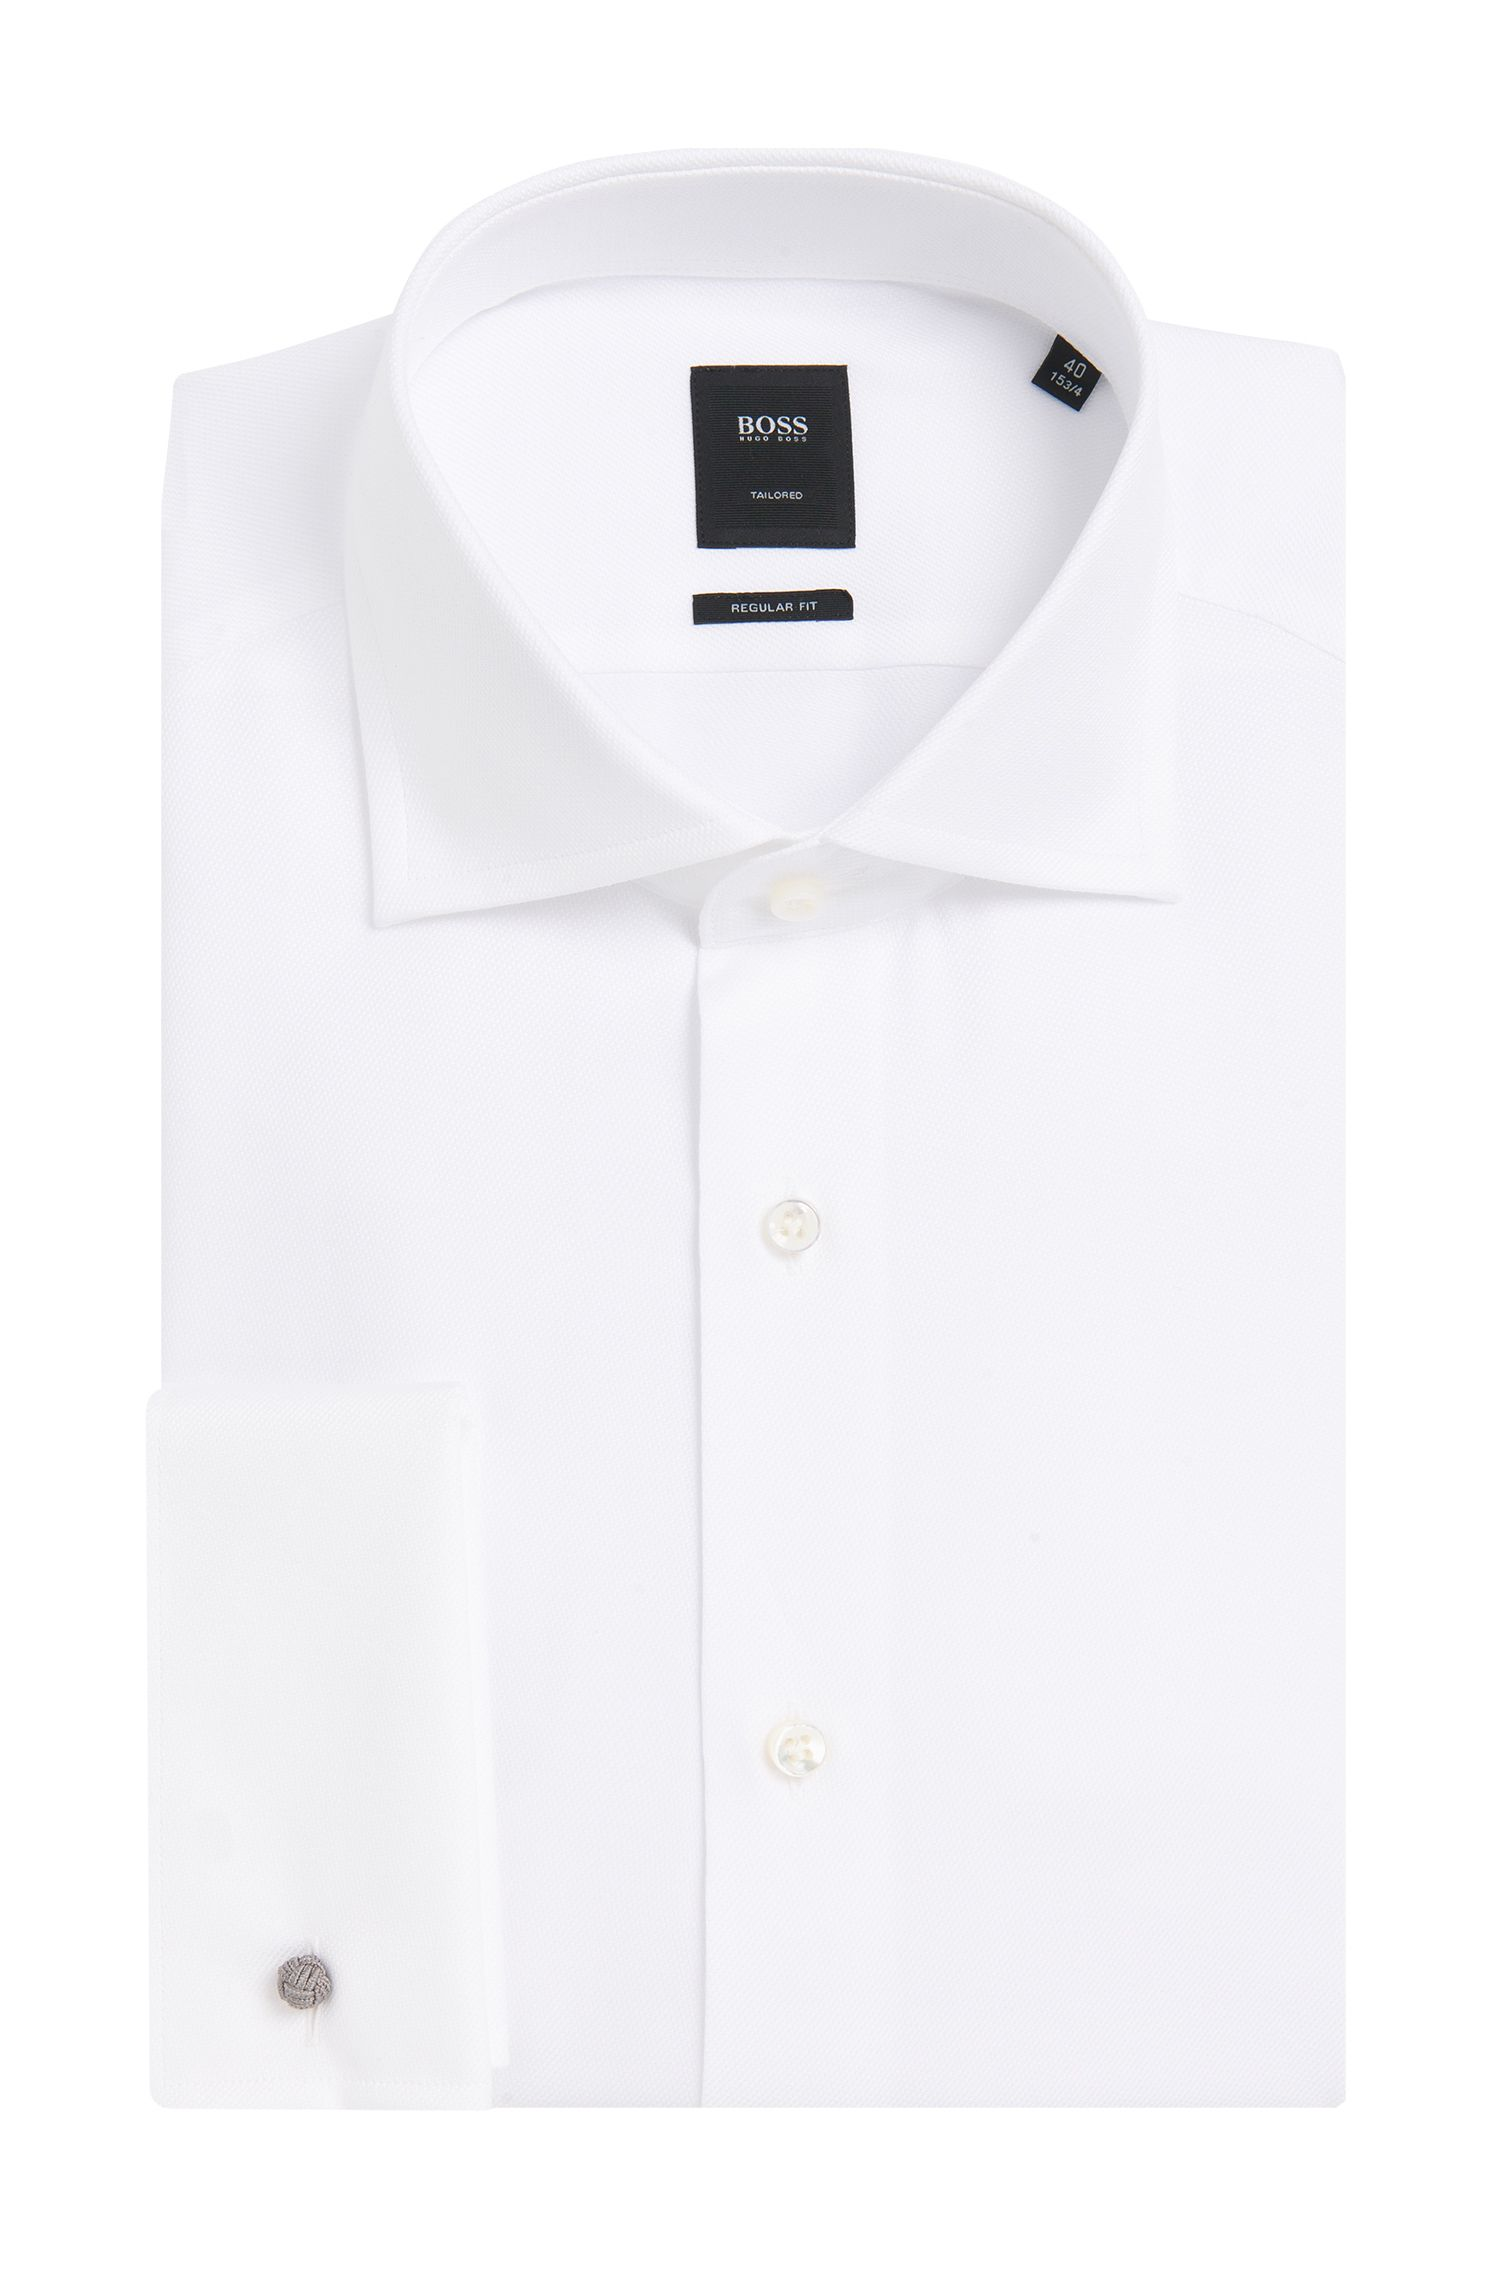 Egyptian Cotton Dress Shirt, Slim Fit | T-Stan